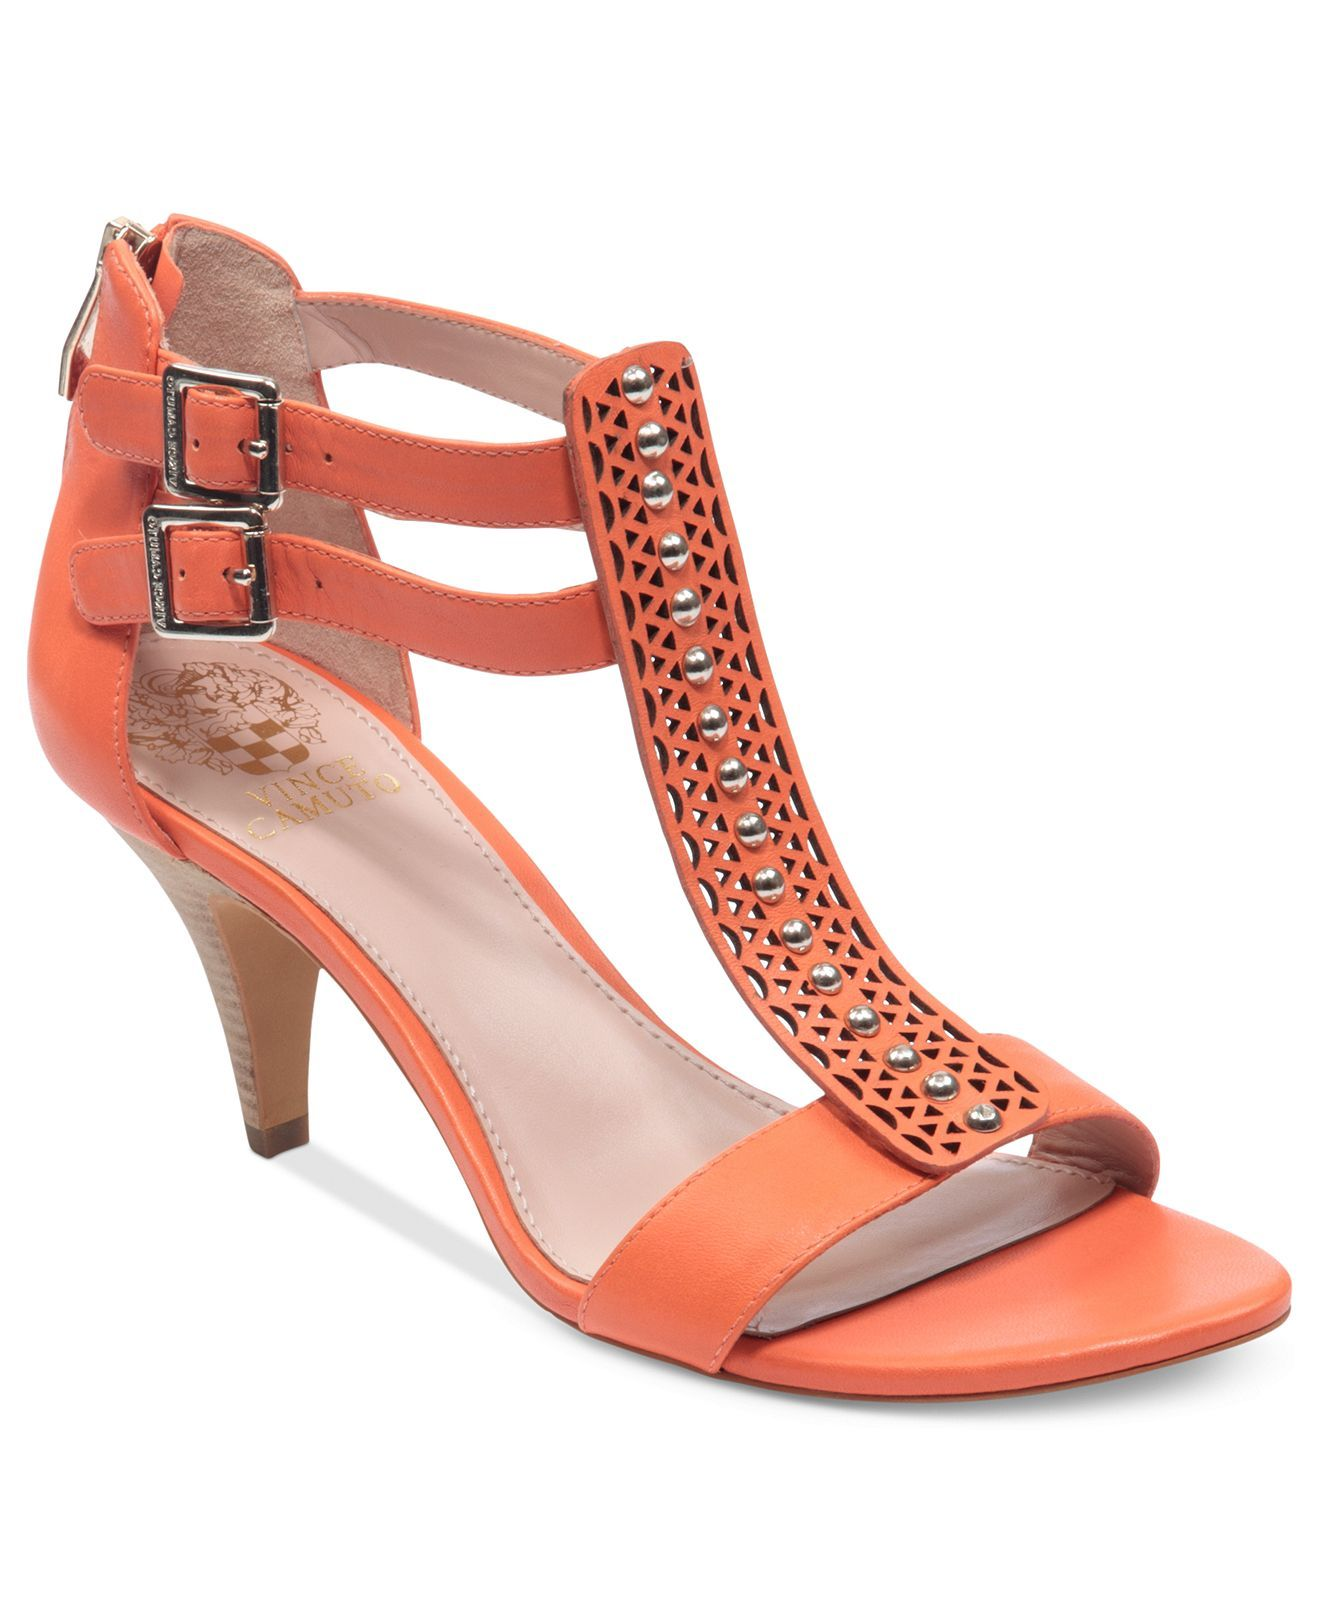 8fa2dfe2fb67 Vince Camuto Shoes